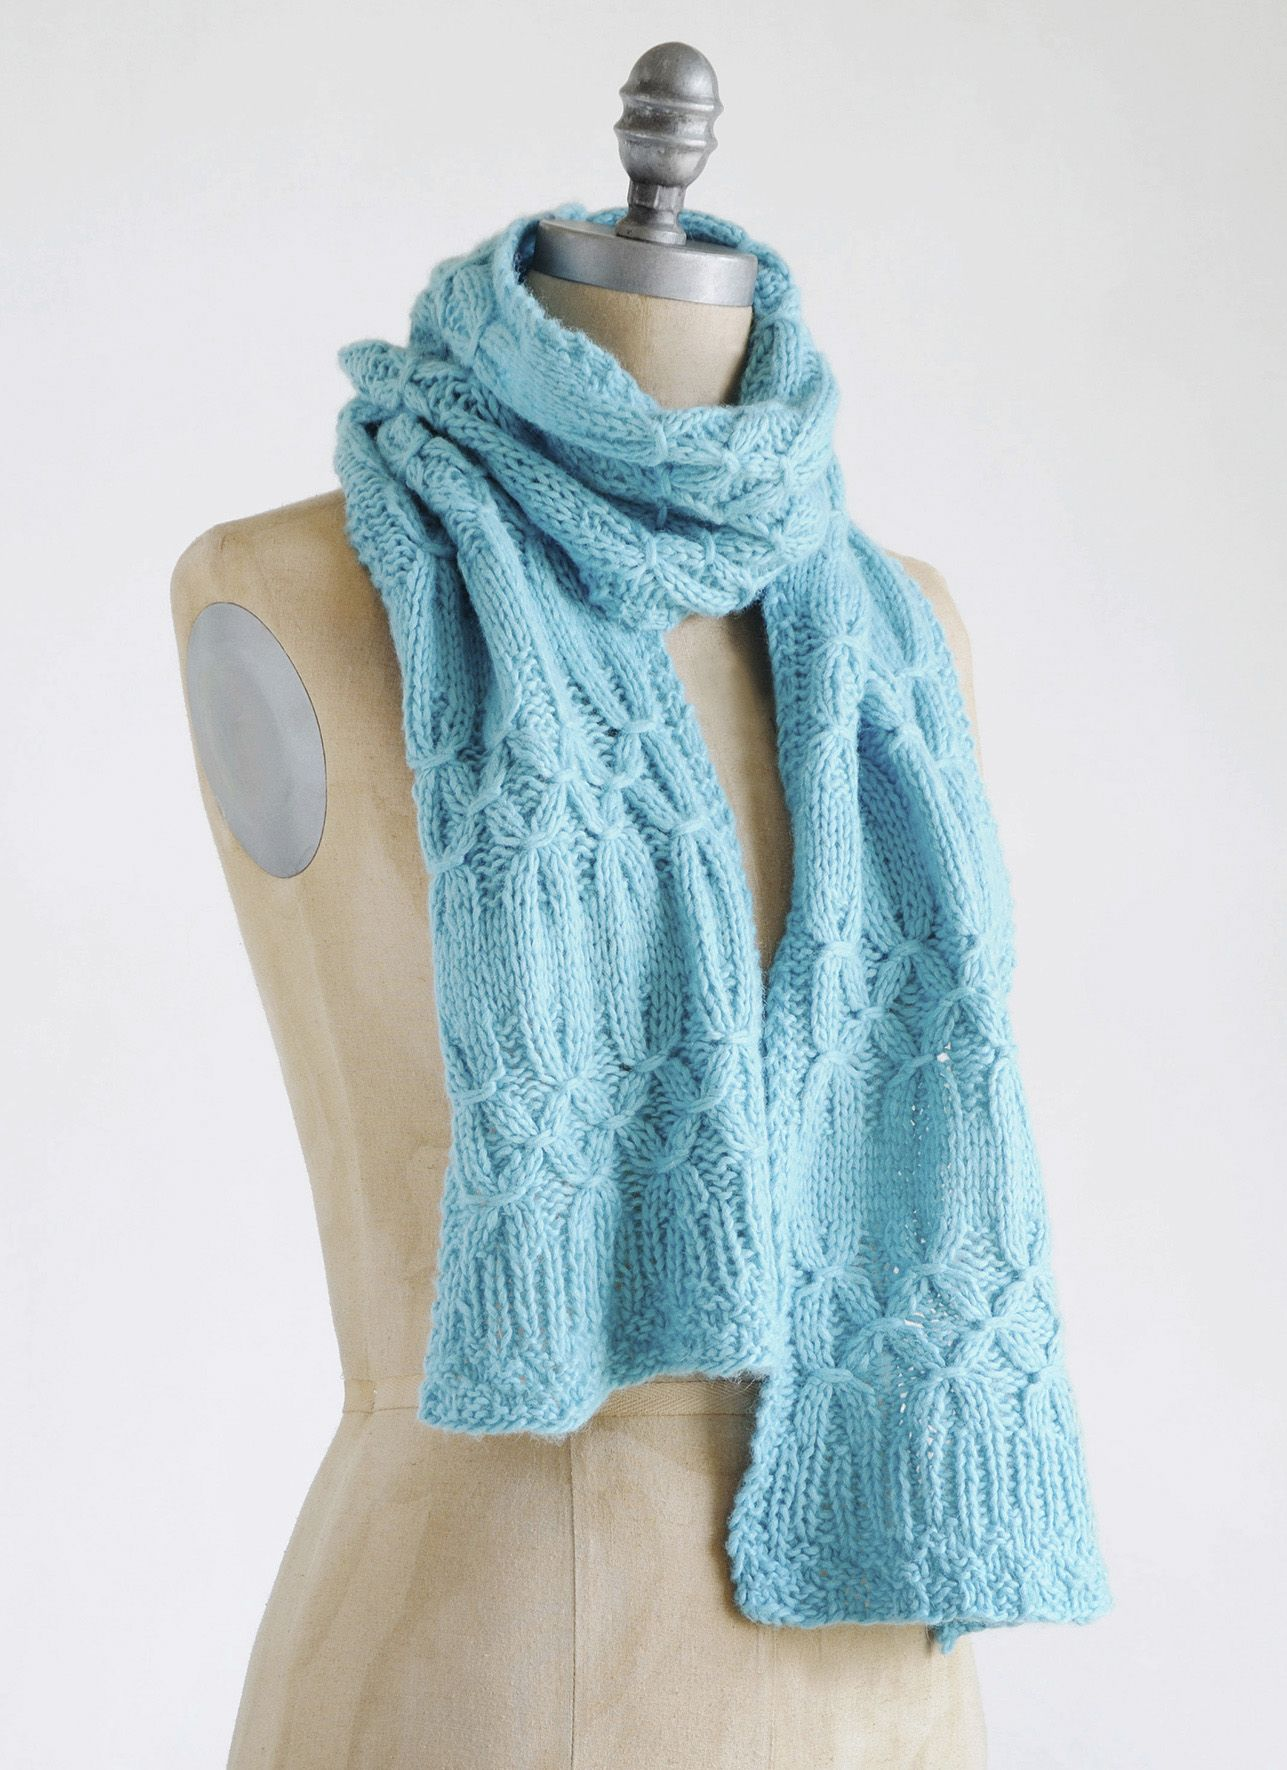 Techno Scarf   Patterns, Scarves and Crochet